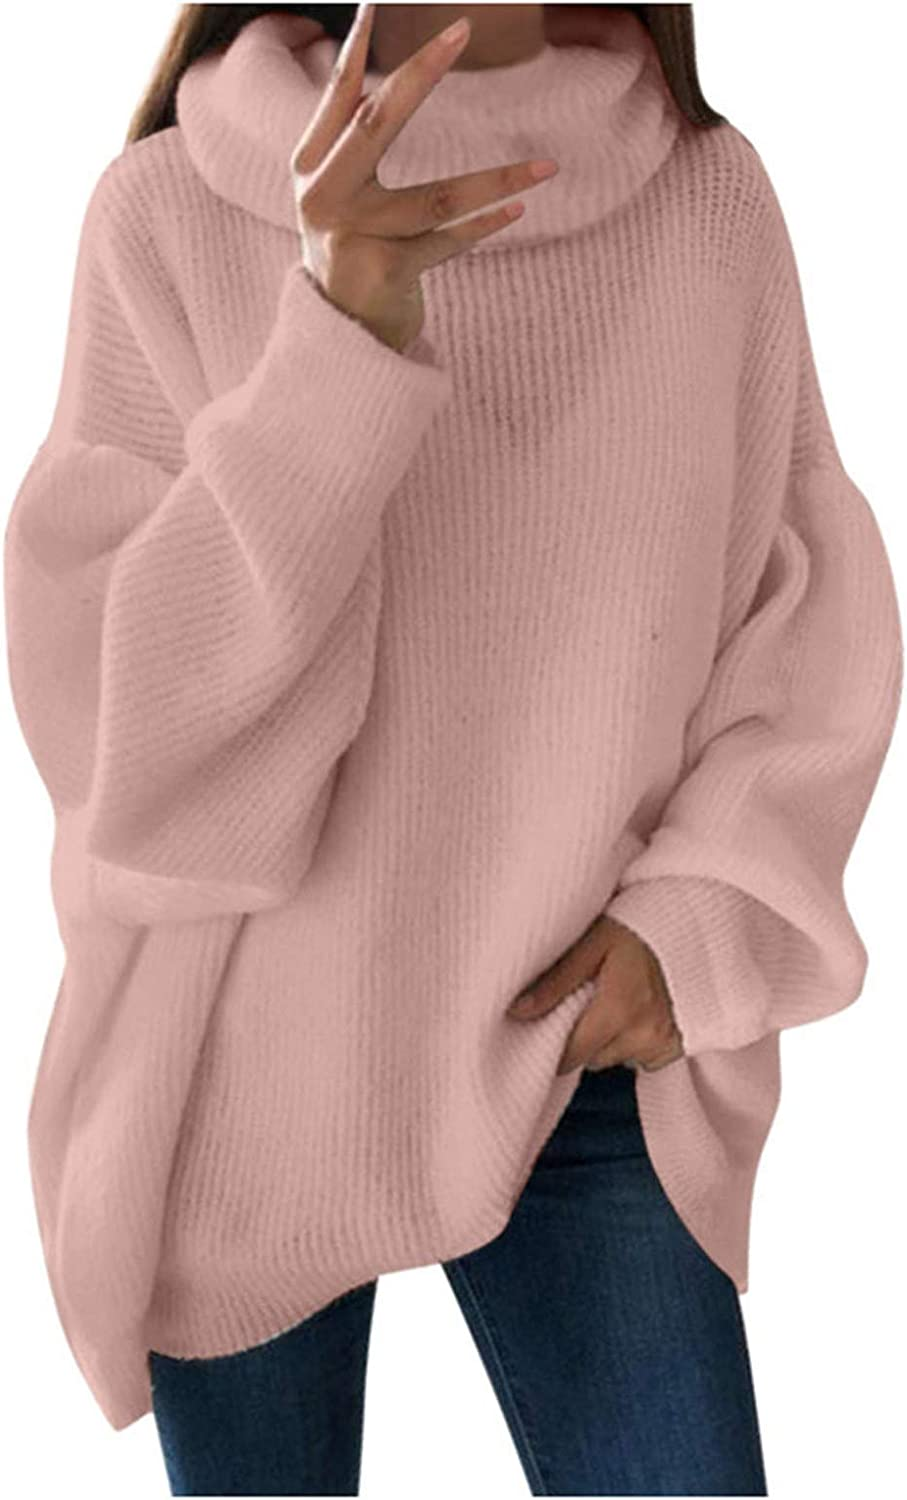 FABIURT Sweaters for Women, Womens Turtleneck Knit Sweater Pullover Long Sleeve Oversized Comfy Loose Jumper Blouse Tops